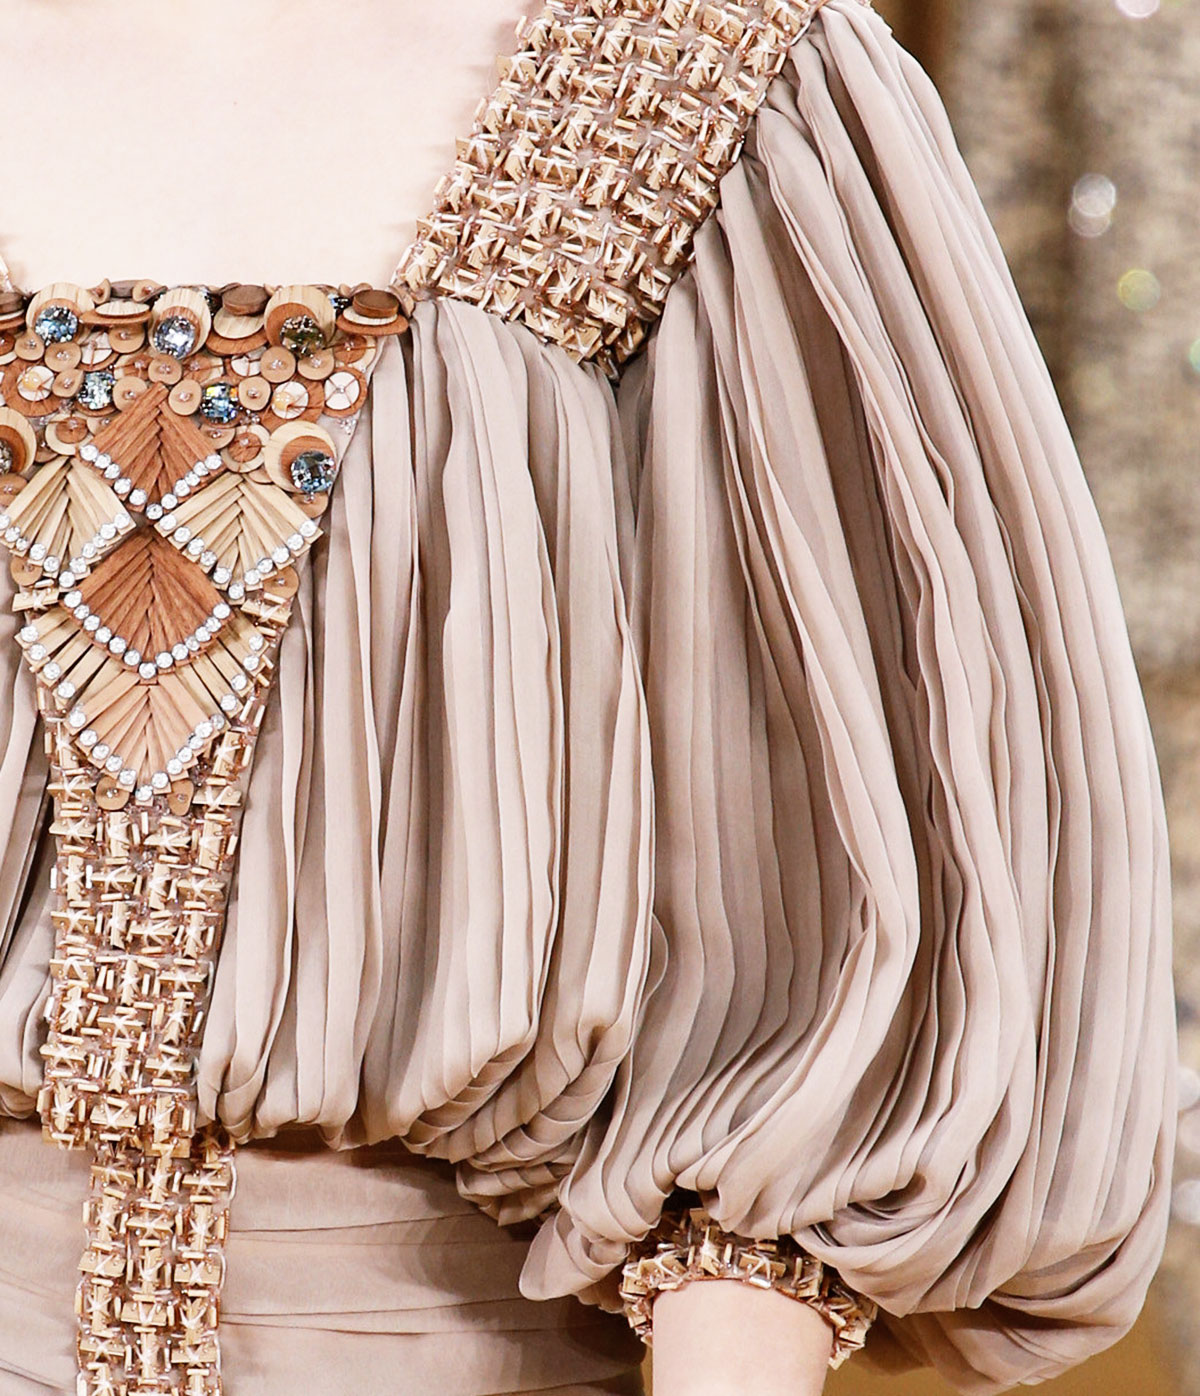 Chanel Spring 2016 Haute Couture wood seqiuins